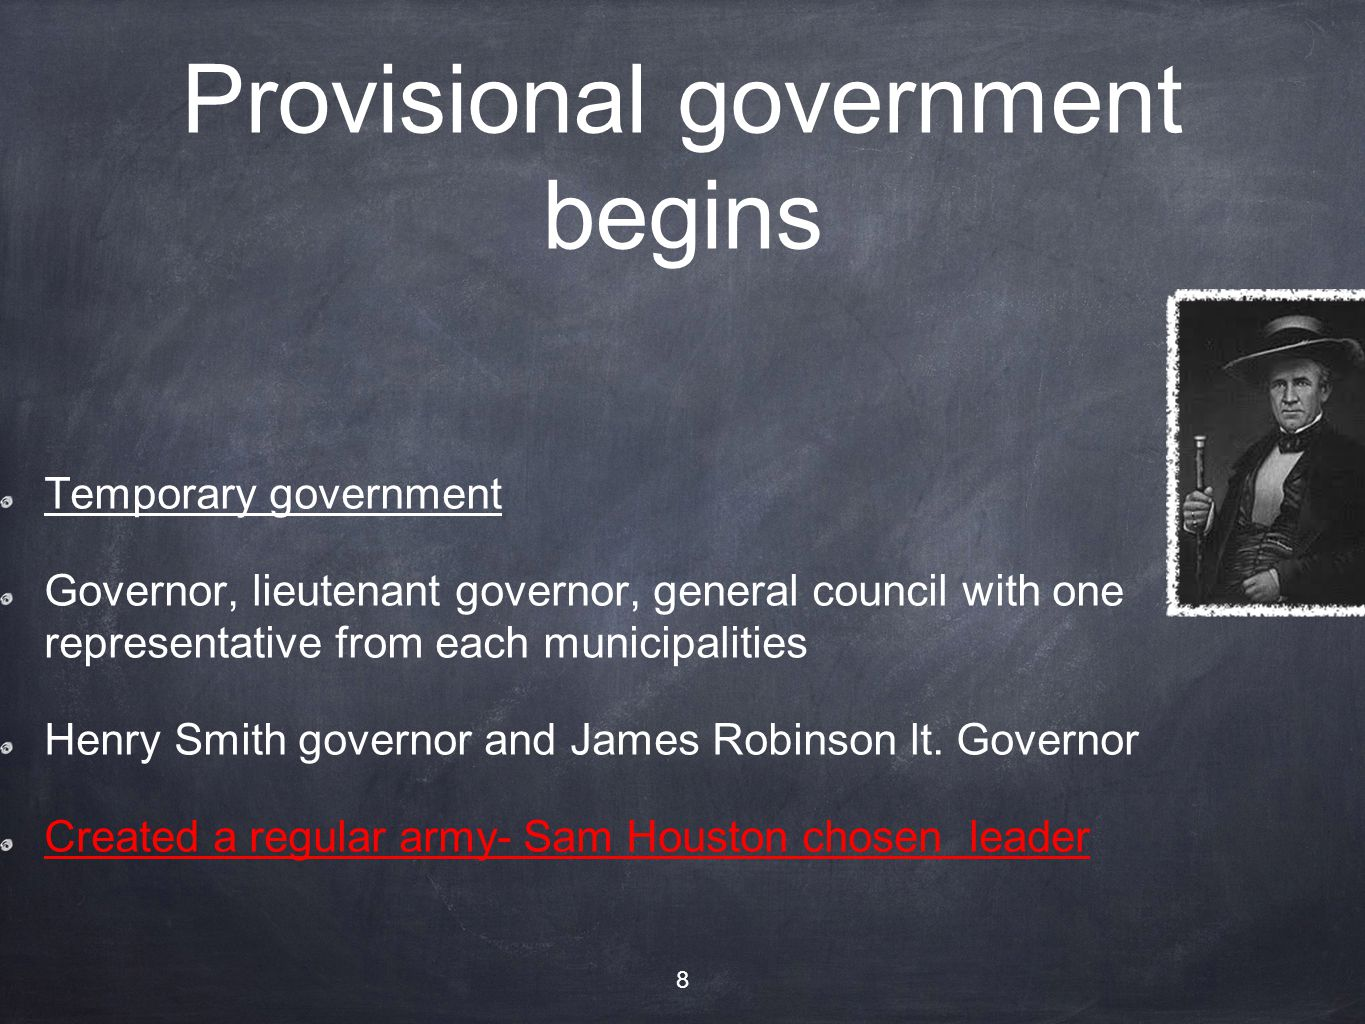 Provisional government begins